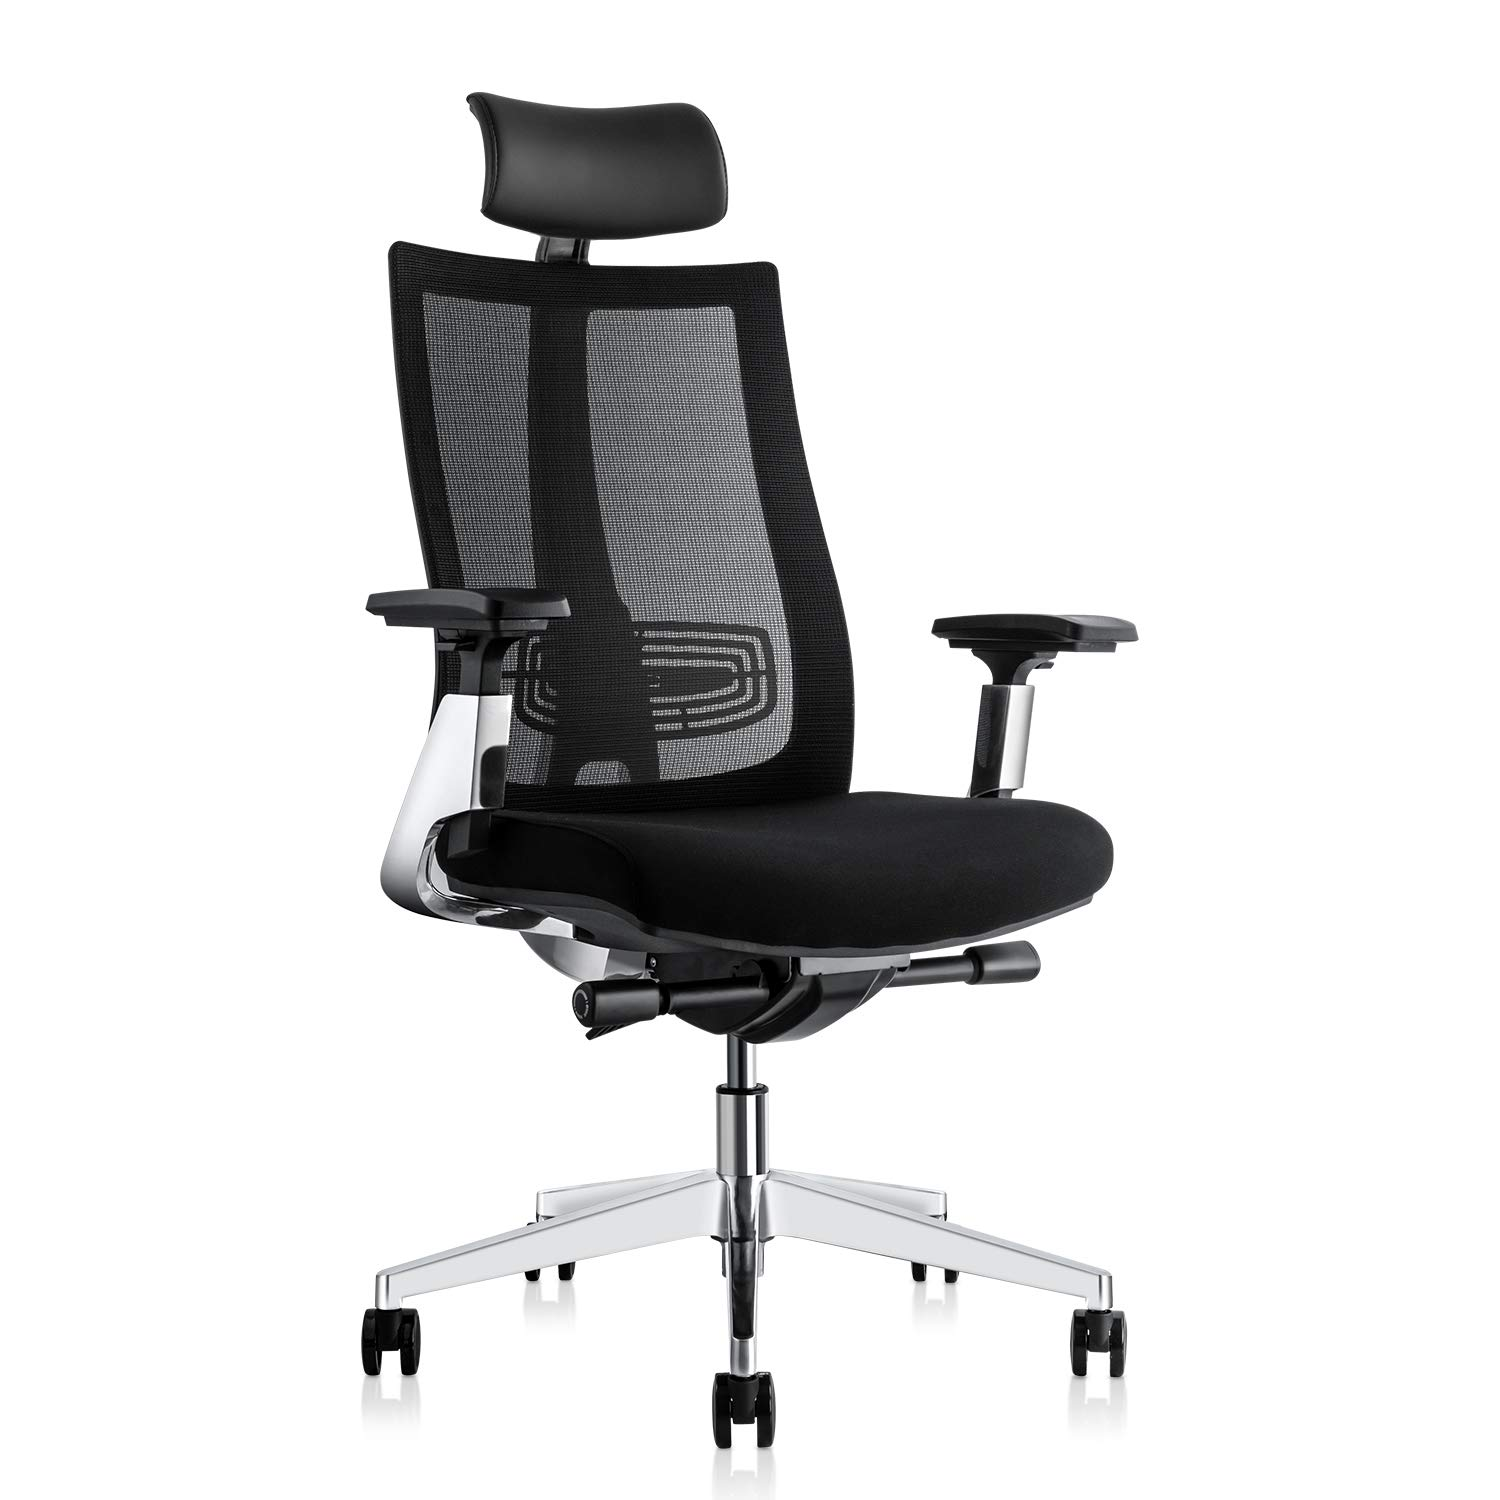 Ergonomic Adjustable Office Chair, Computer Desk Chair with Lumbar Support - High Back with Breathable Mesh, 3D Armrest, Comfortable Glide Seat Cushion and Aluminum Alloy Frame, Recliner by Gabrylly